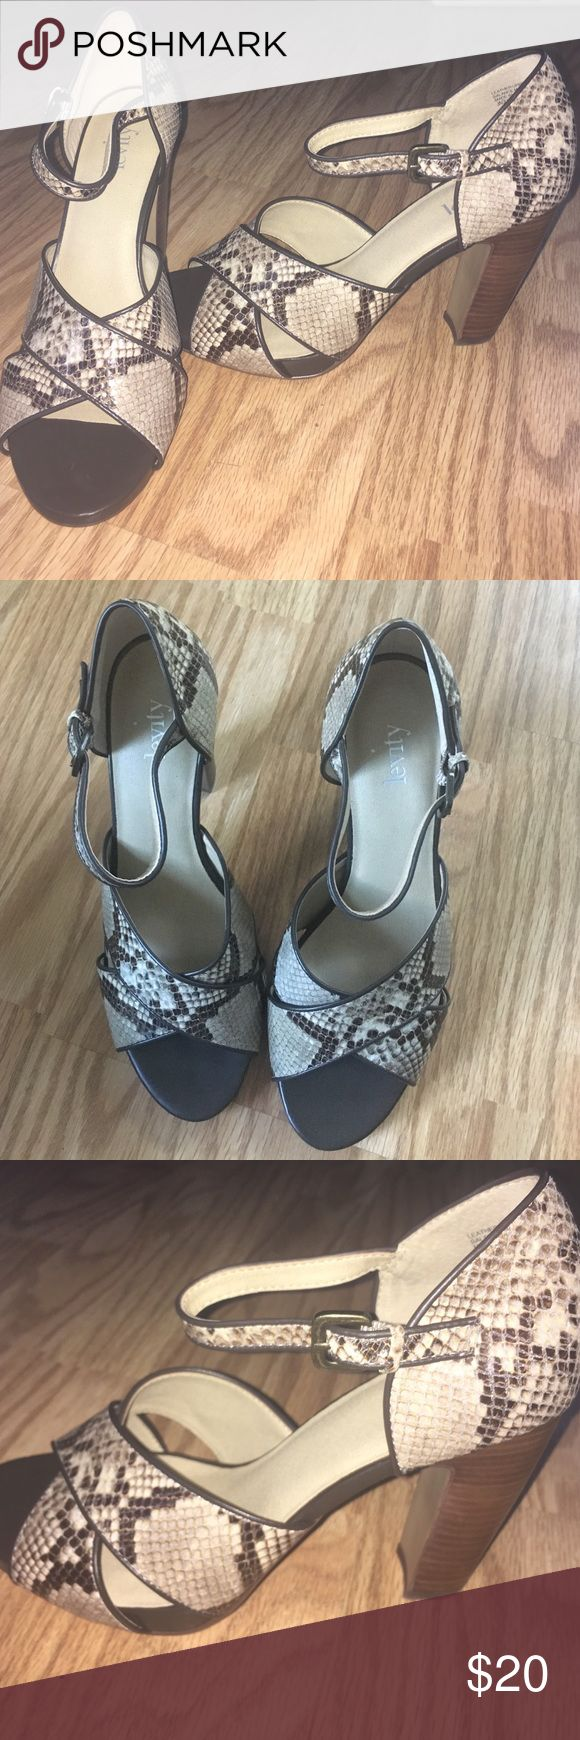 Snake skin print open toed heels Worn once, still have the box and all. Beautiful thick 3in heel with soft heel bed. Flexible and comfortable Levity Shoes Heels